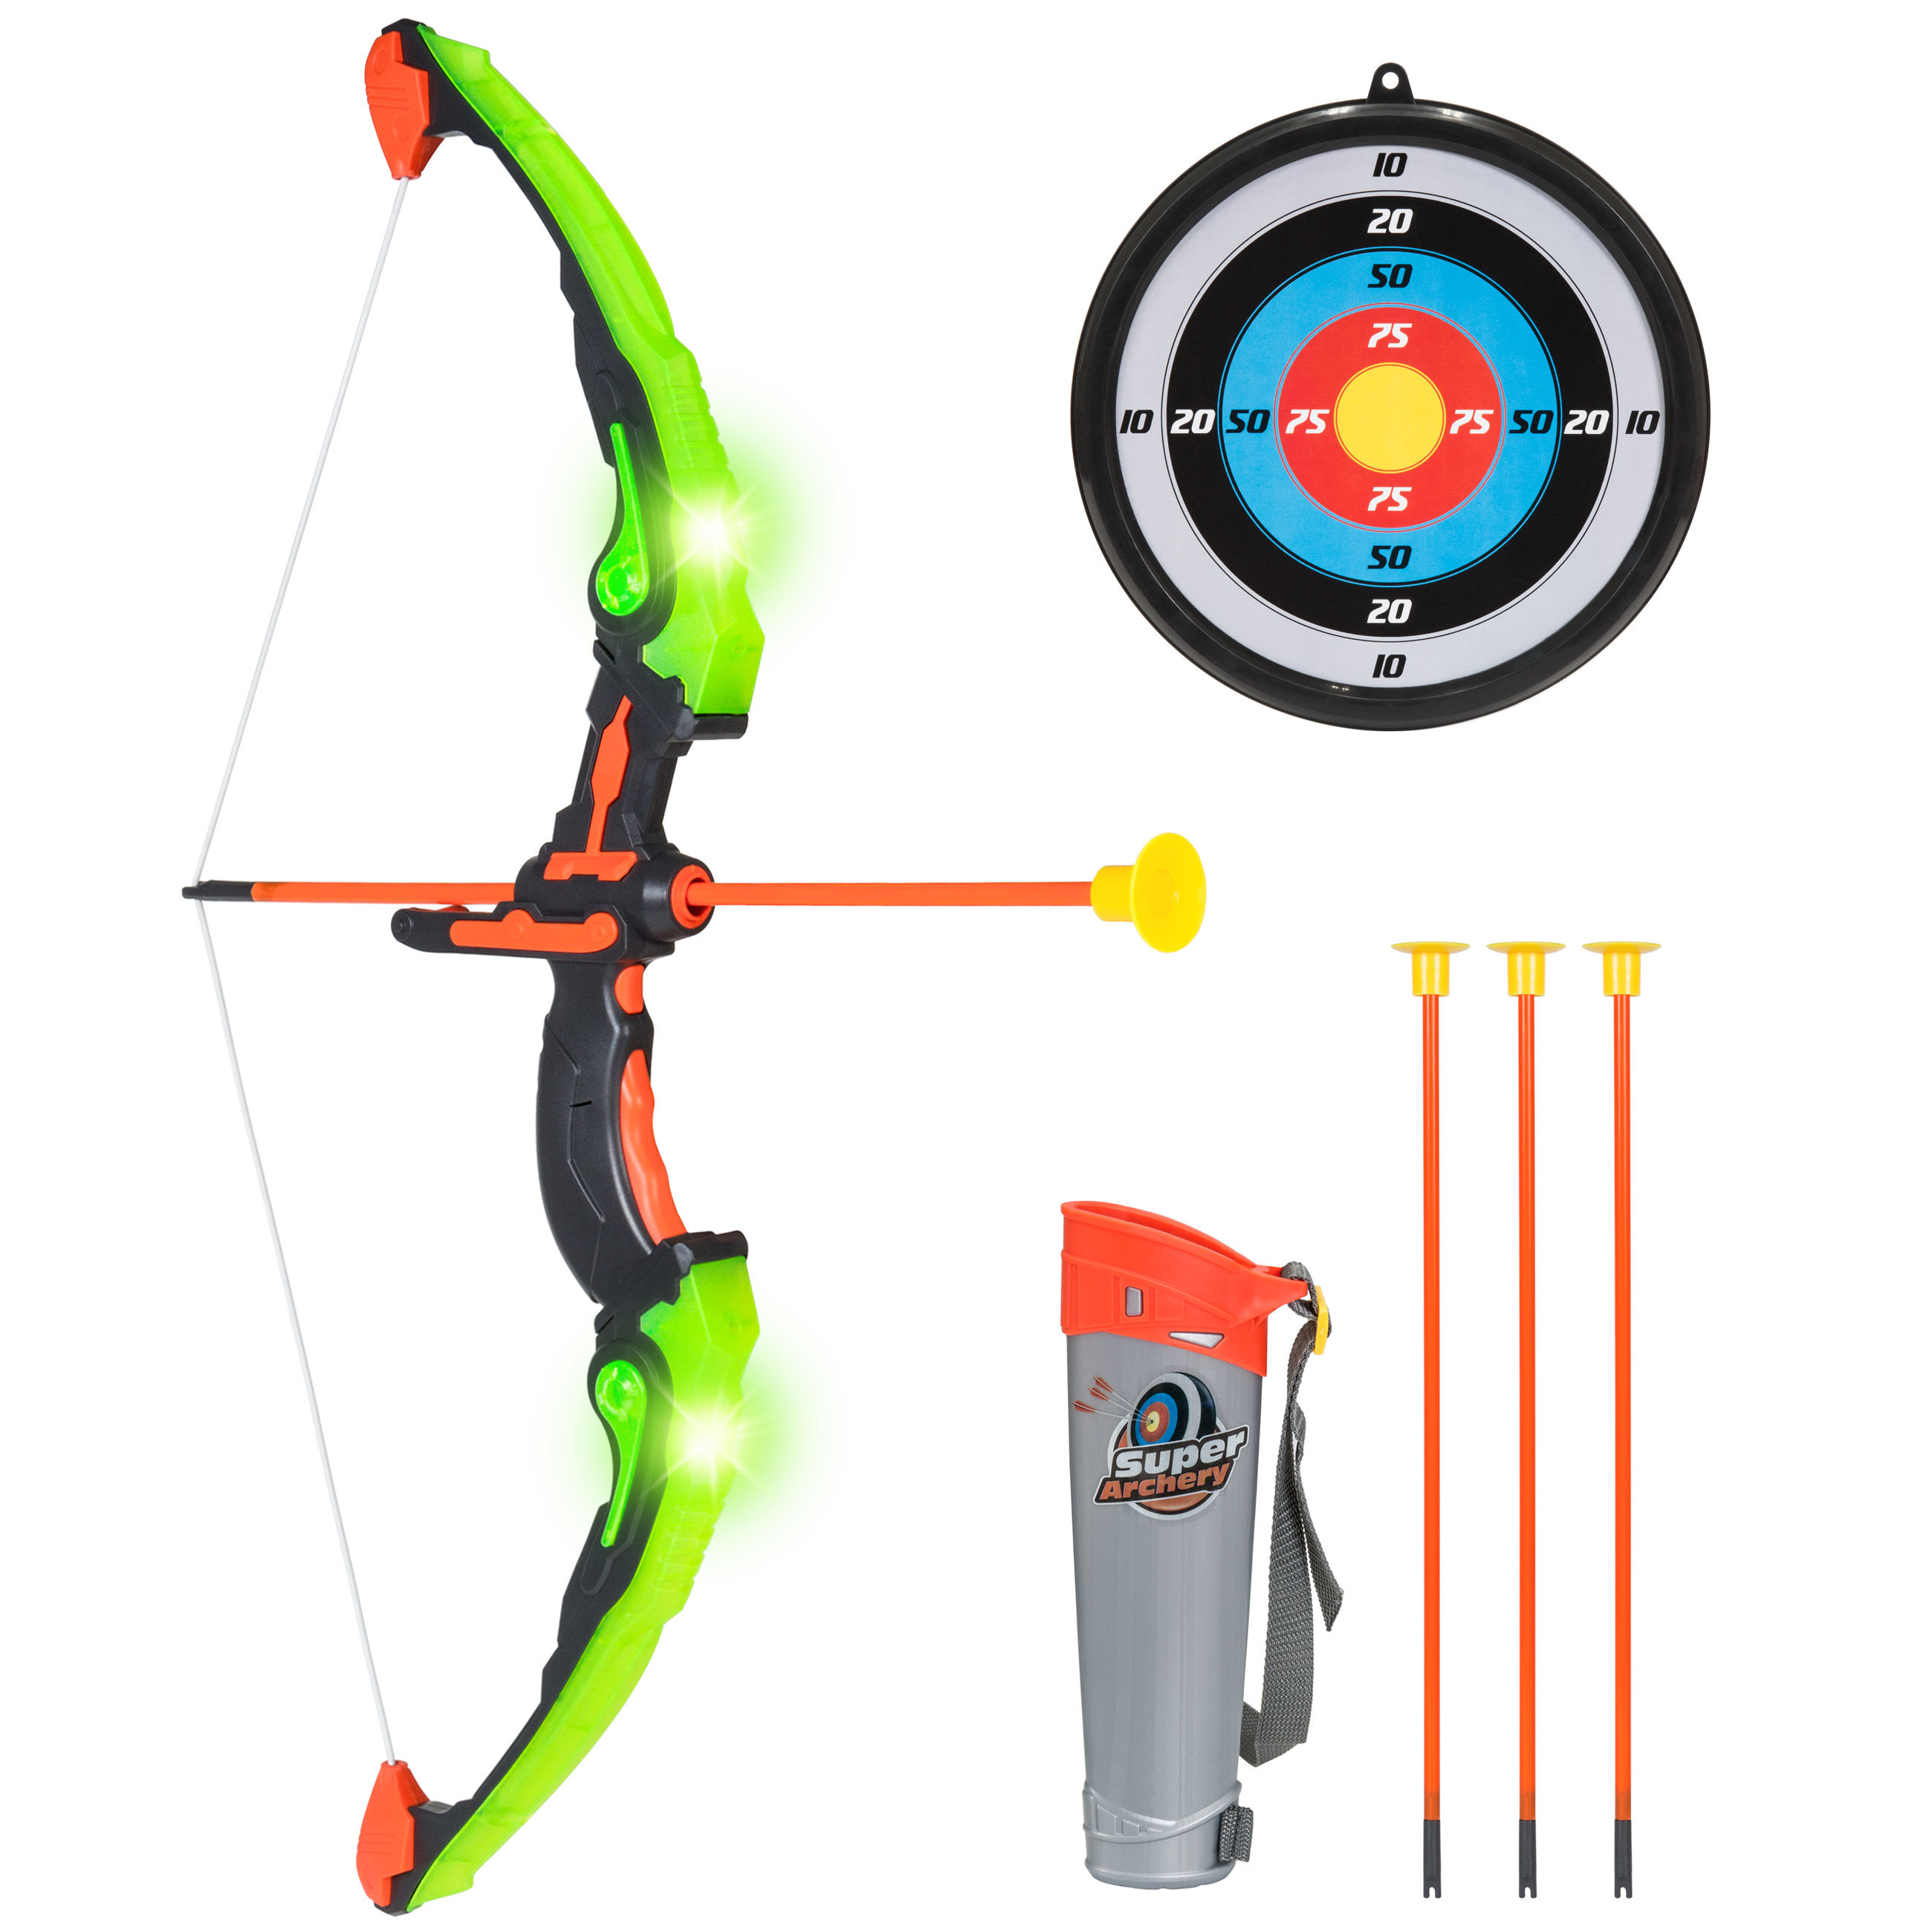 Best Choice Products Light Up Kids Archery Bow and Arrow Playset w/ 3 Light Modes, Suction Darts, Holder, Target - Green